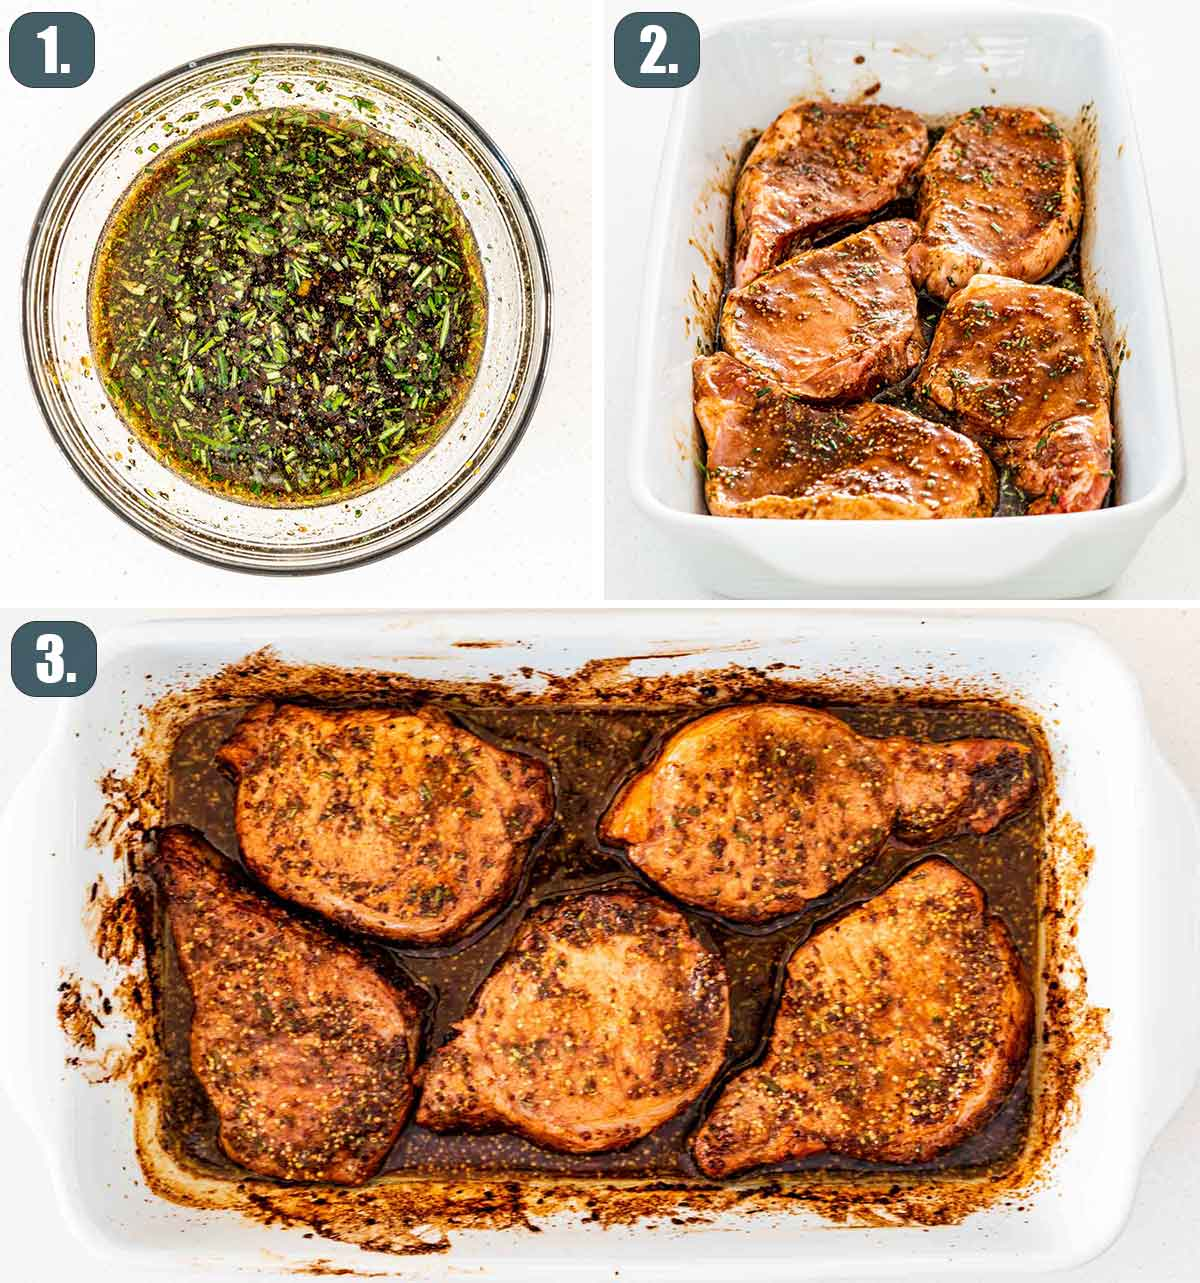 detailed process shots showing how to make mustard balsamic pork chops.